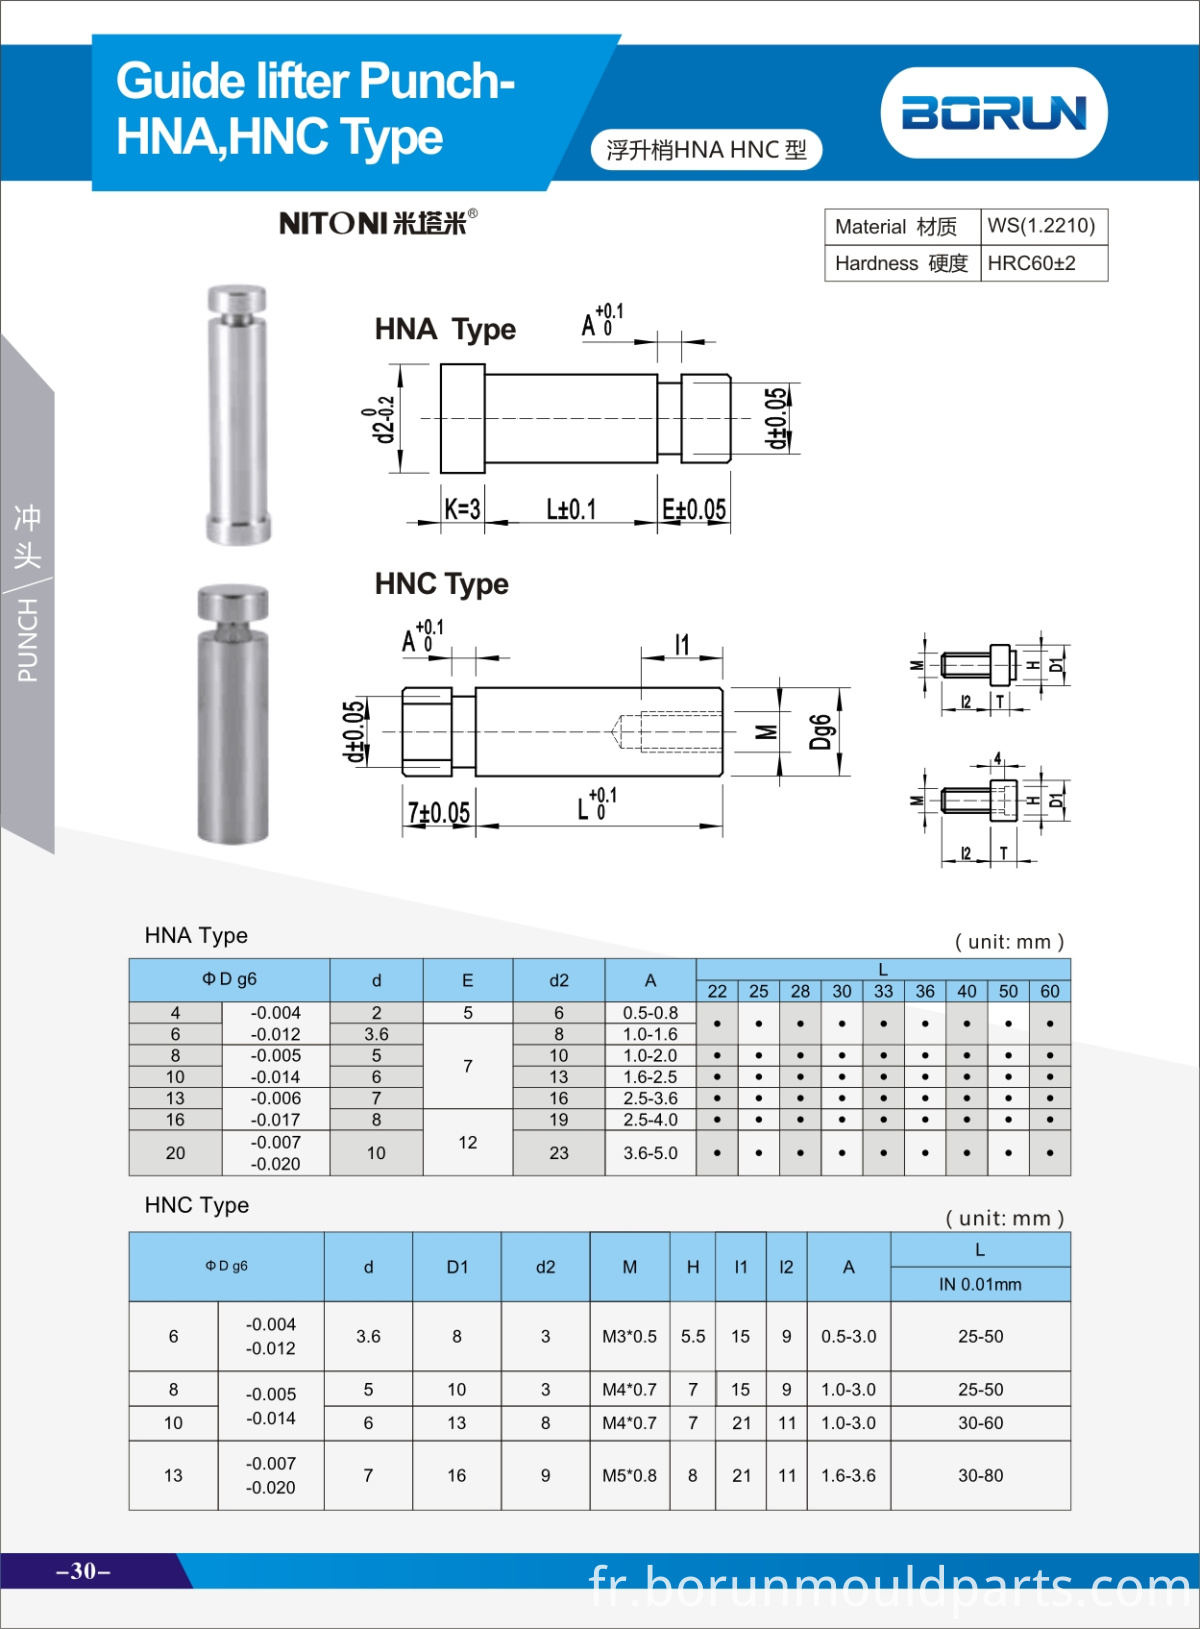 Guide Lifter-HNA HNC